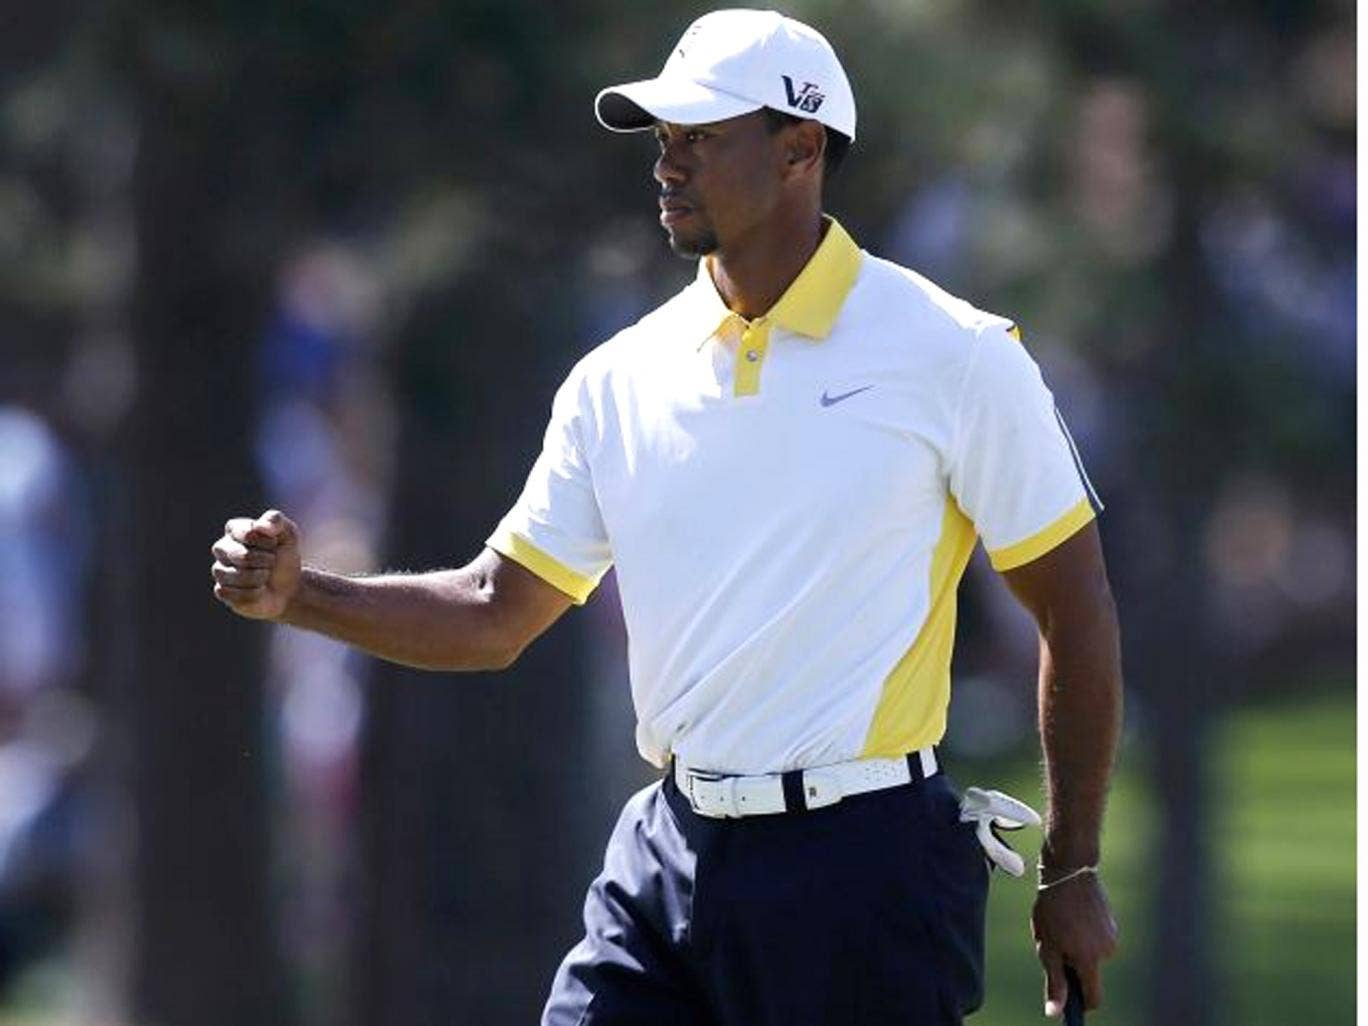 Woods challenges for second-day lead